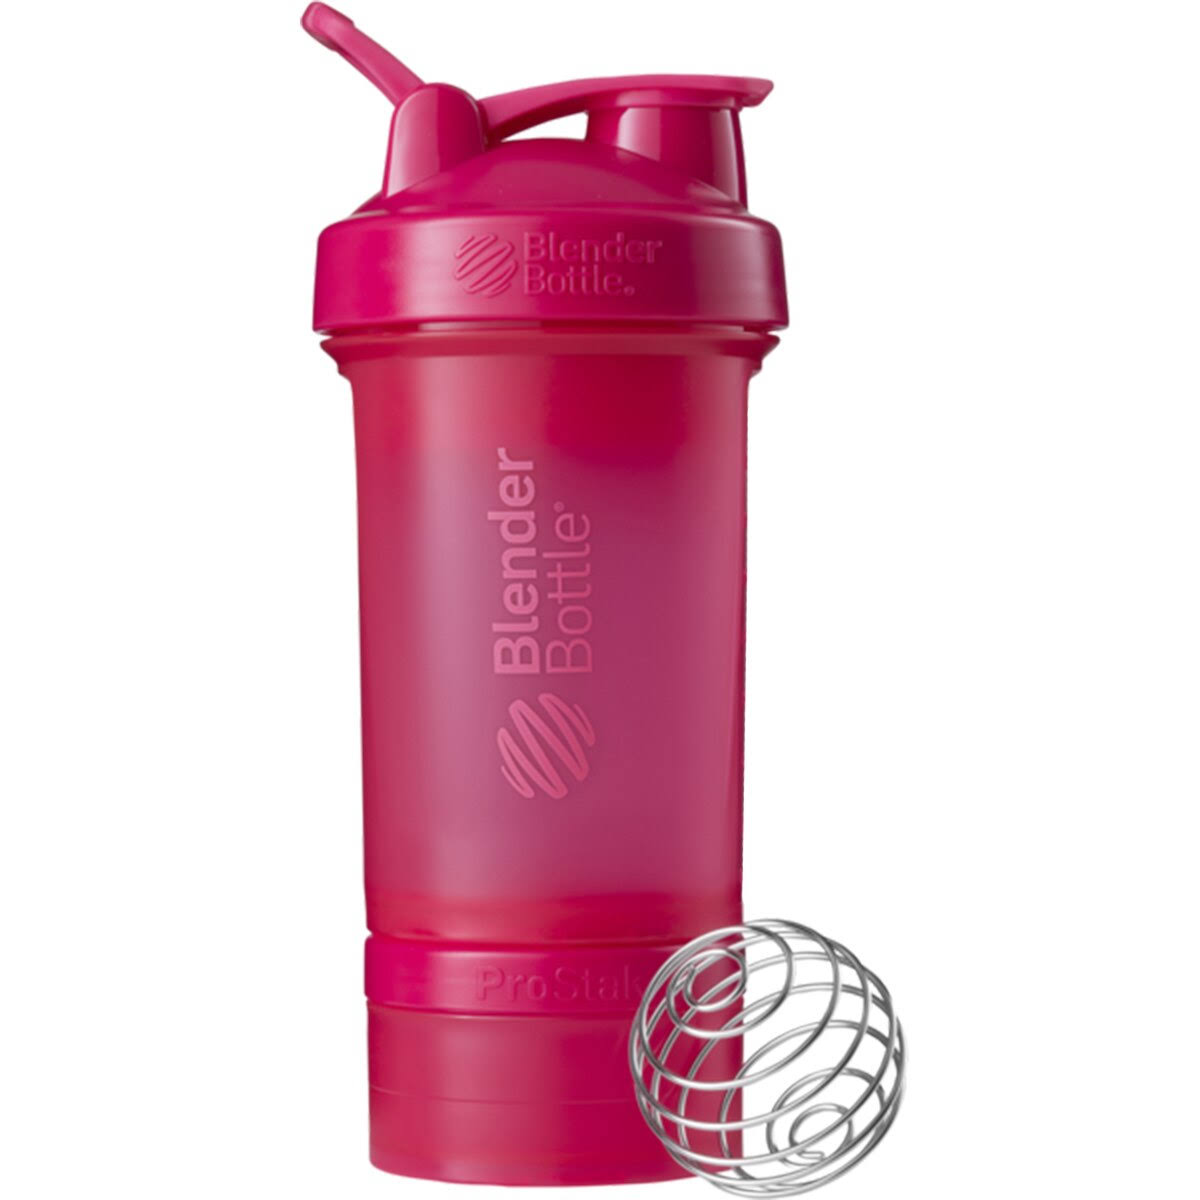 Blender Bottle Pro Stak System­ with Bottle and Twist n' Lock Storage - Pink, 650ml